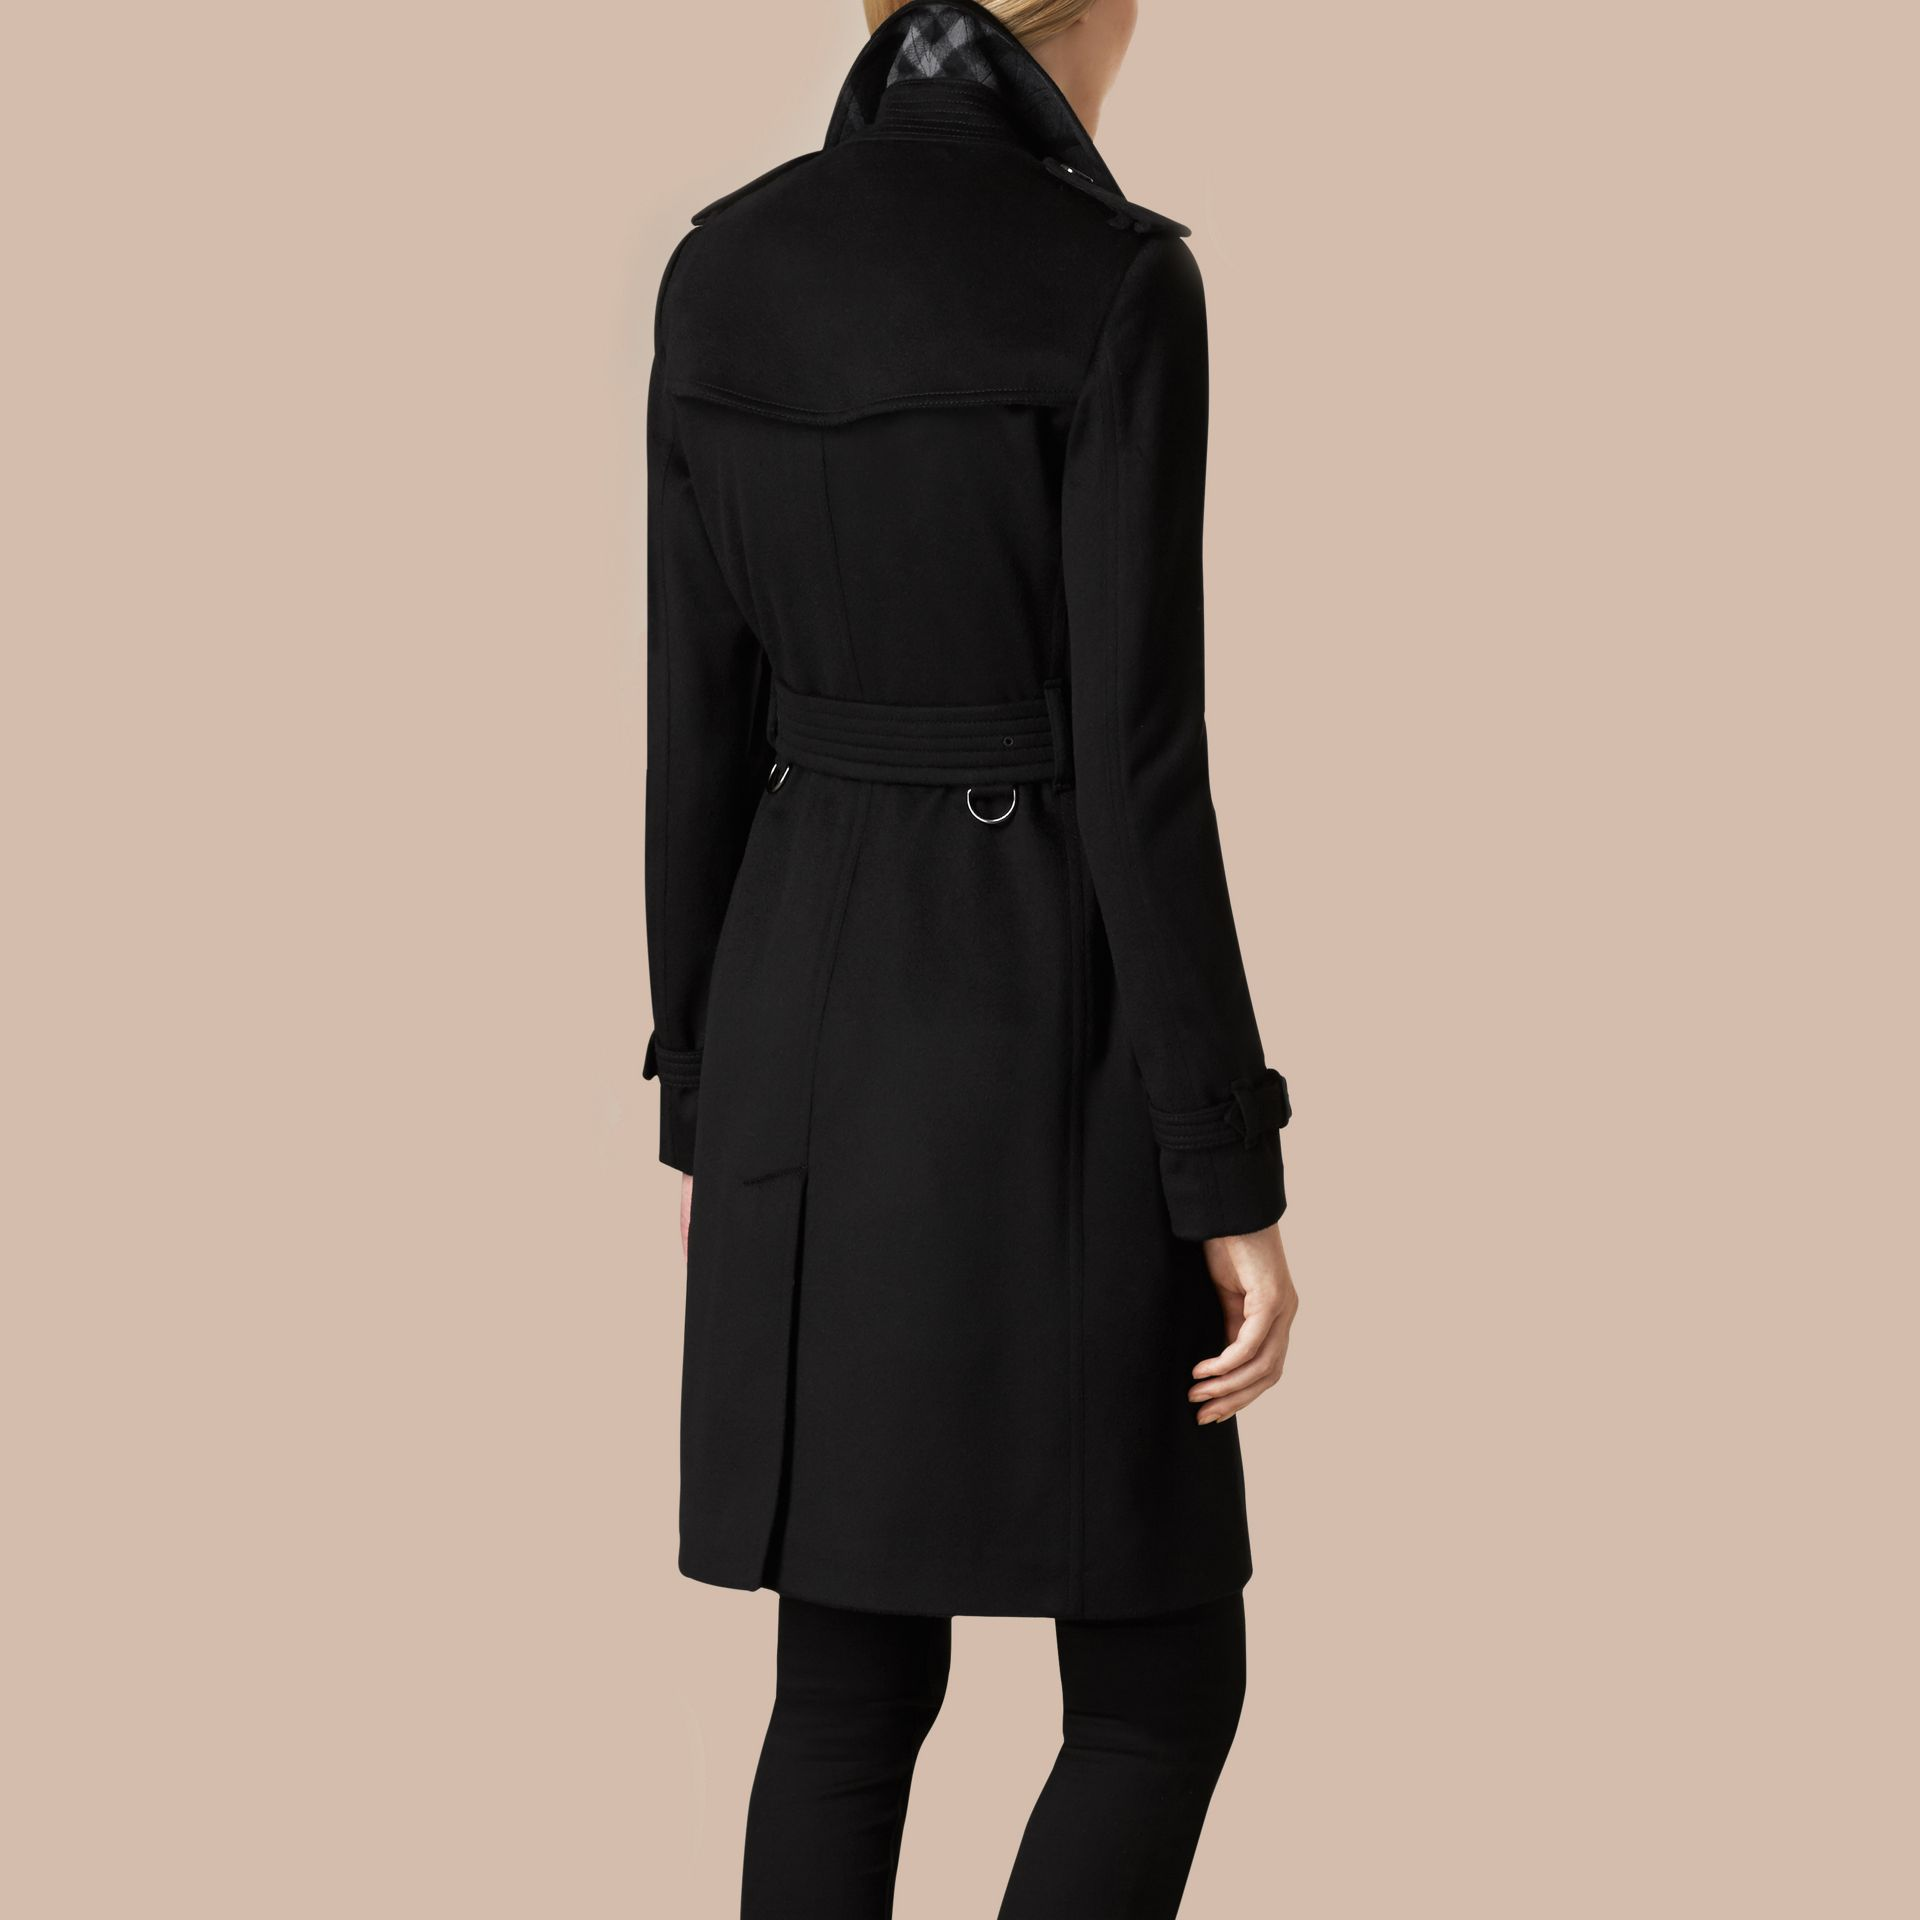 Black Kensington Fit Cashmere Trench Coat Black - gallery image 4